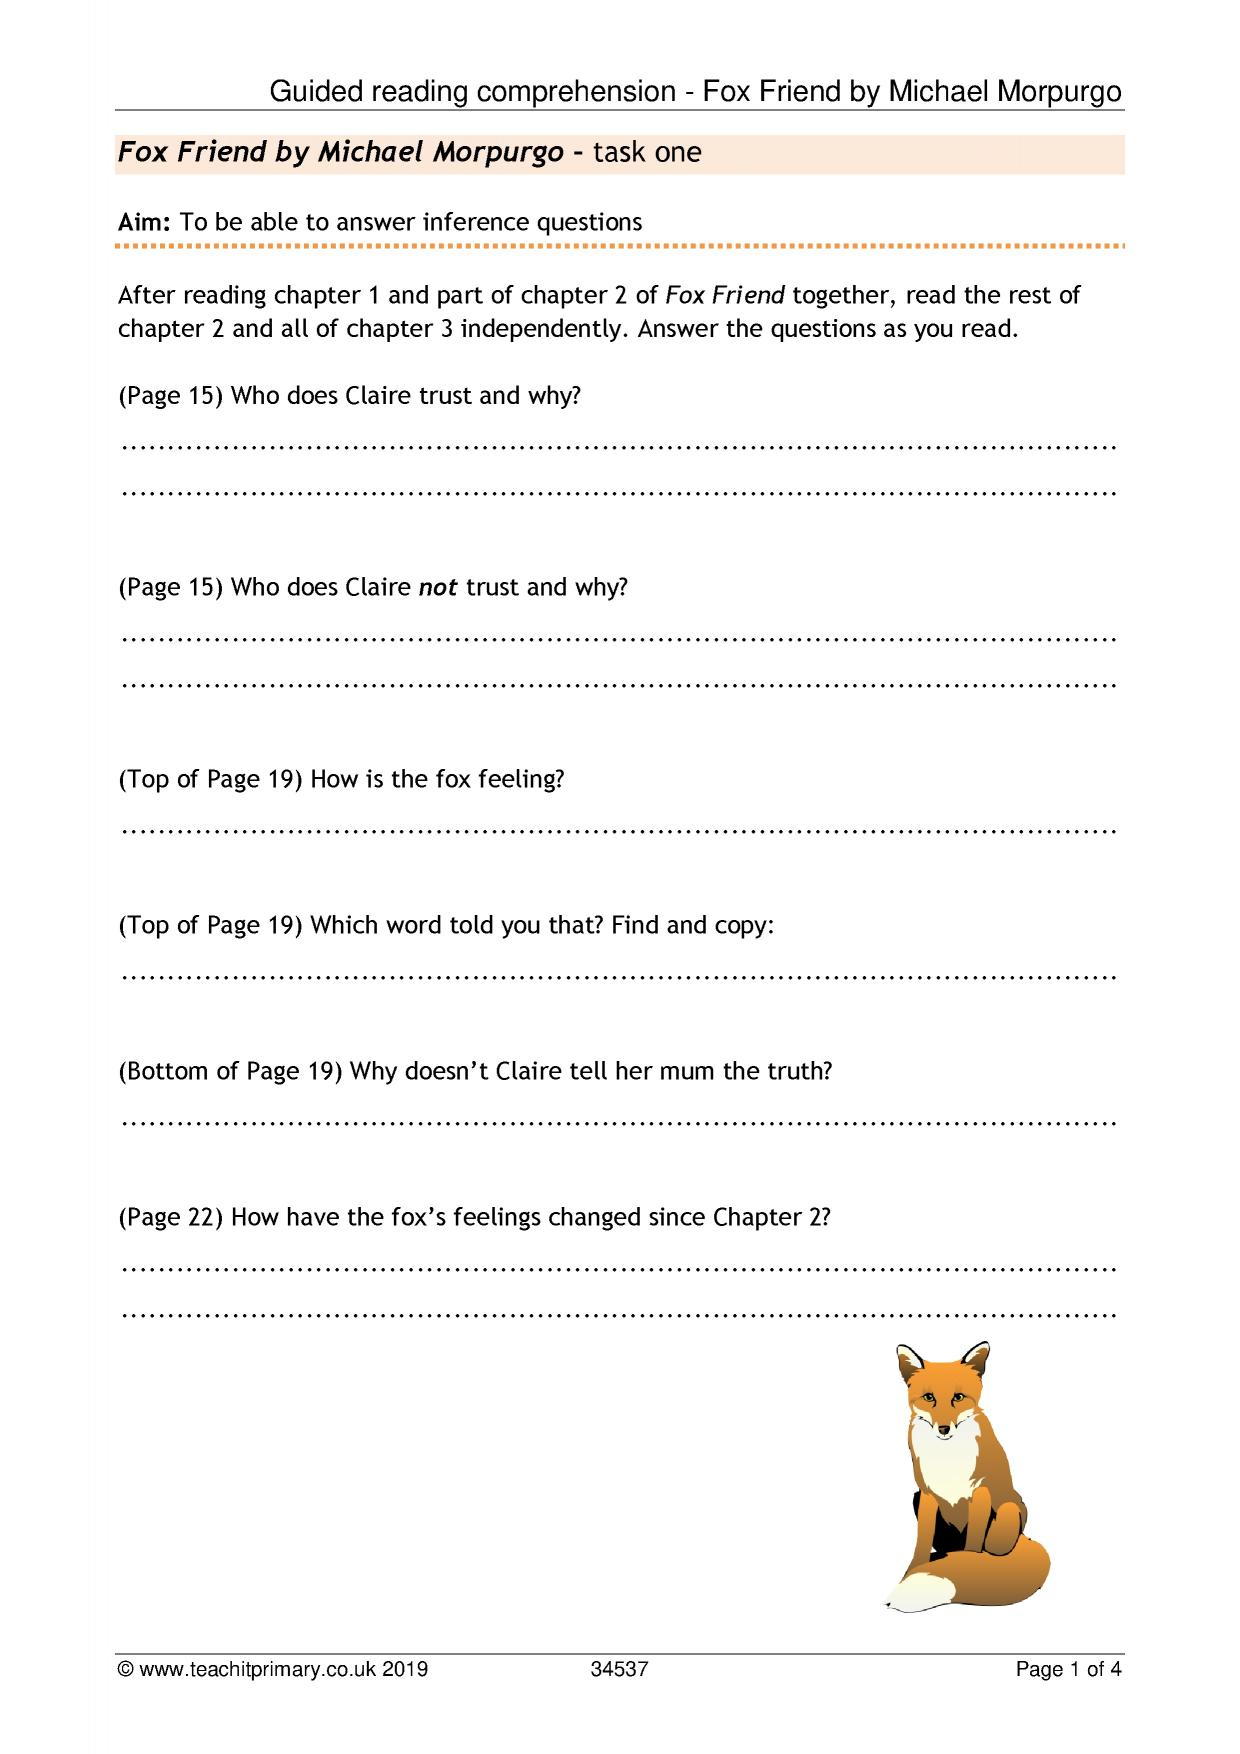 - Reading Comprehension Teaching Resources For KS1 - Teachit Primary